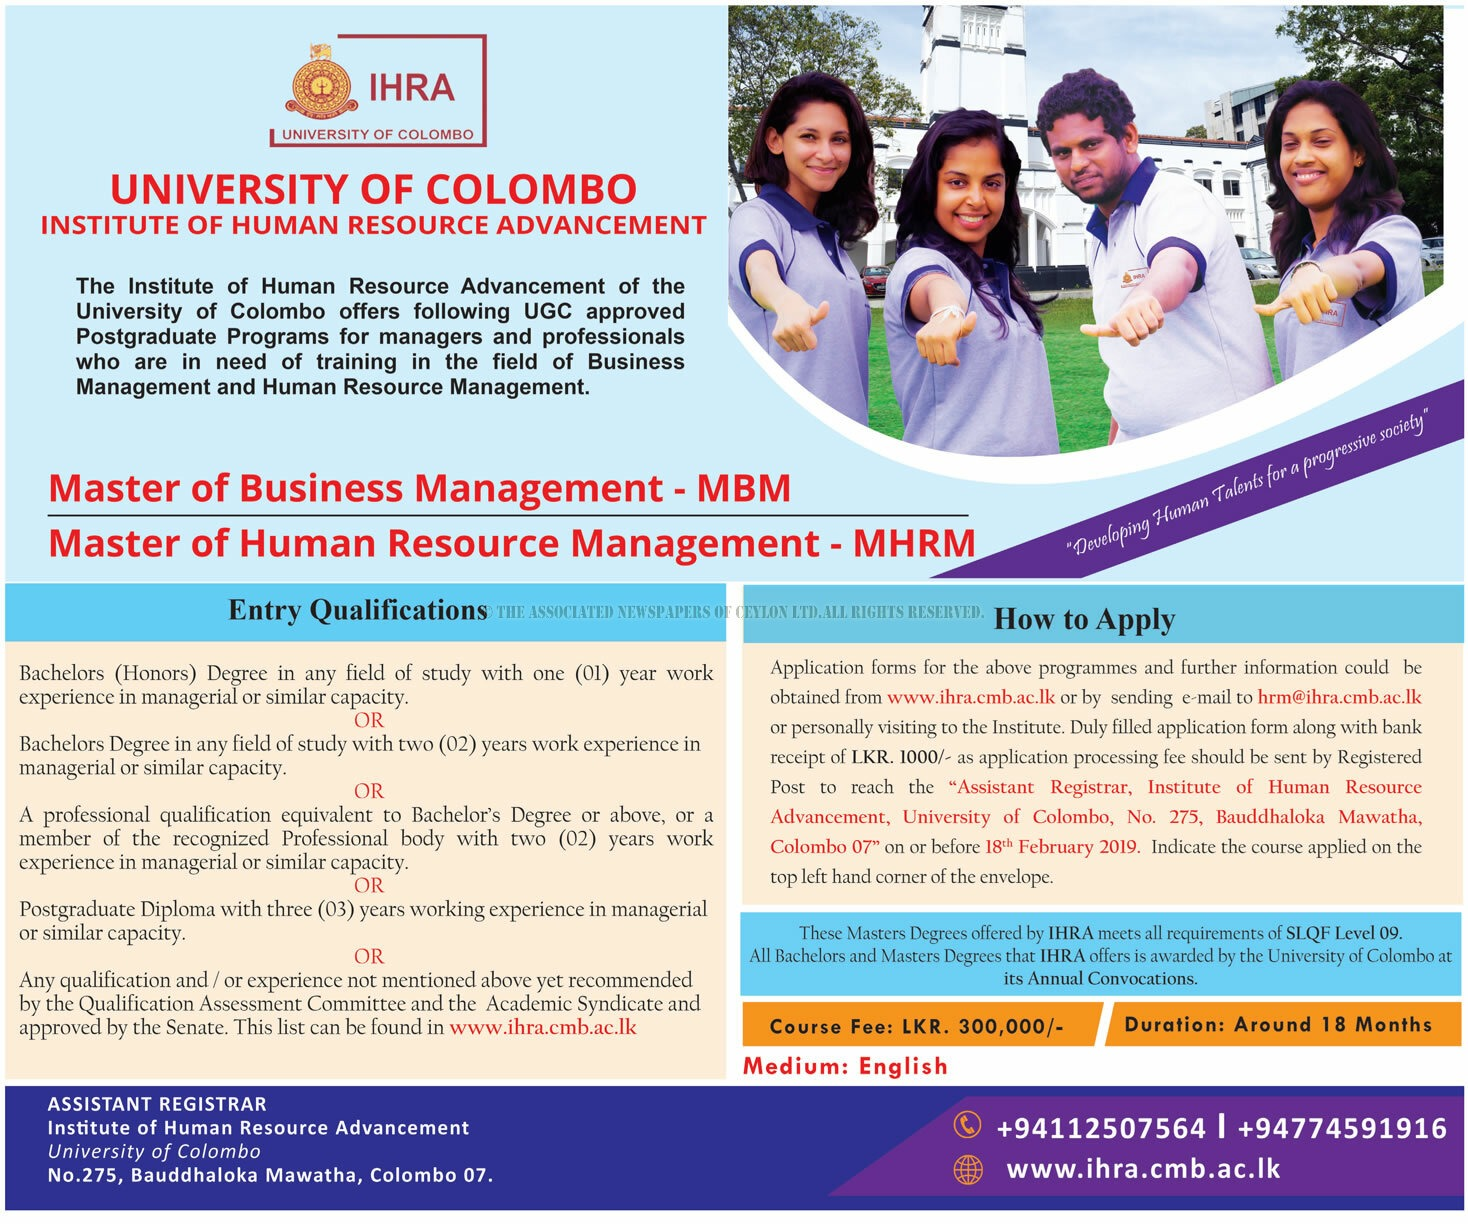 Master of Business Management (MBA), Master of Human Resource Management (MHRM) - University of Colombo